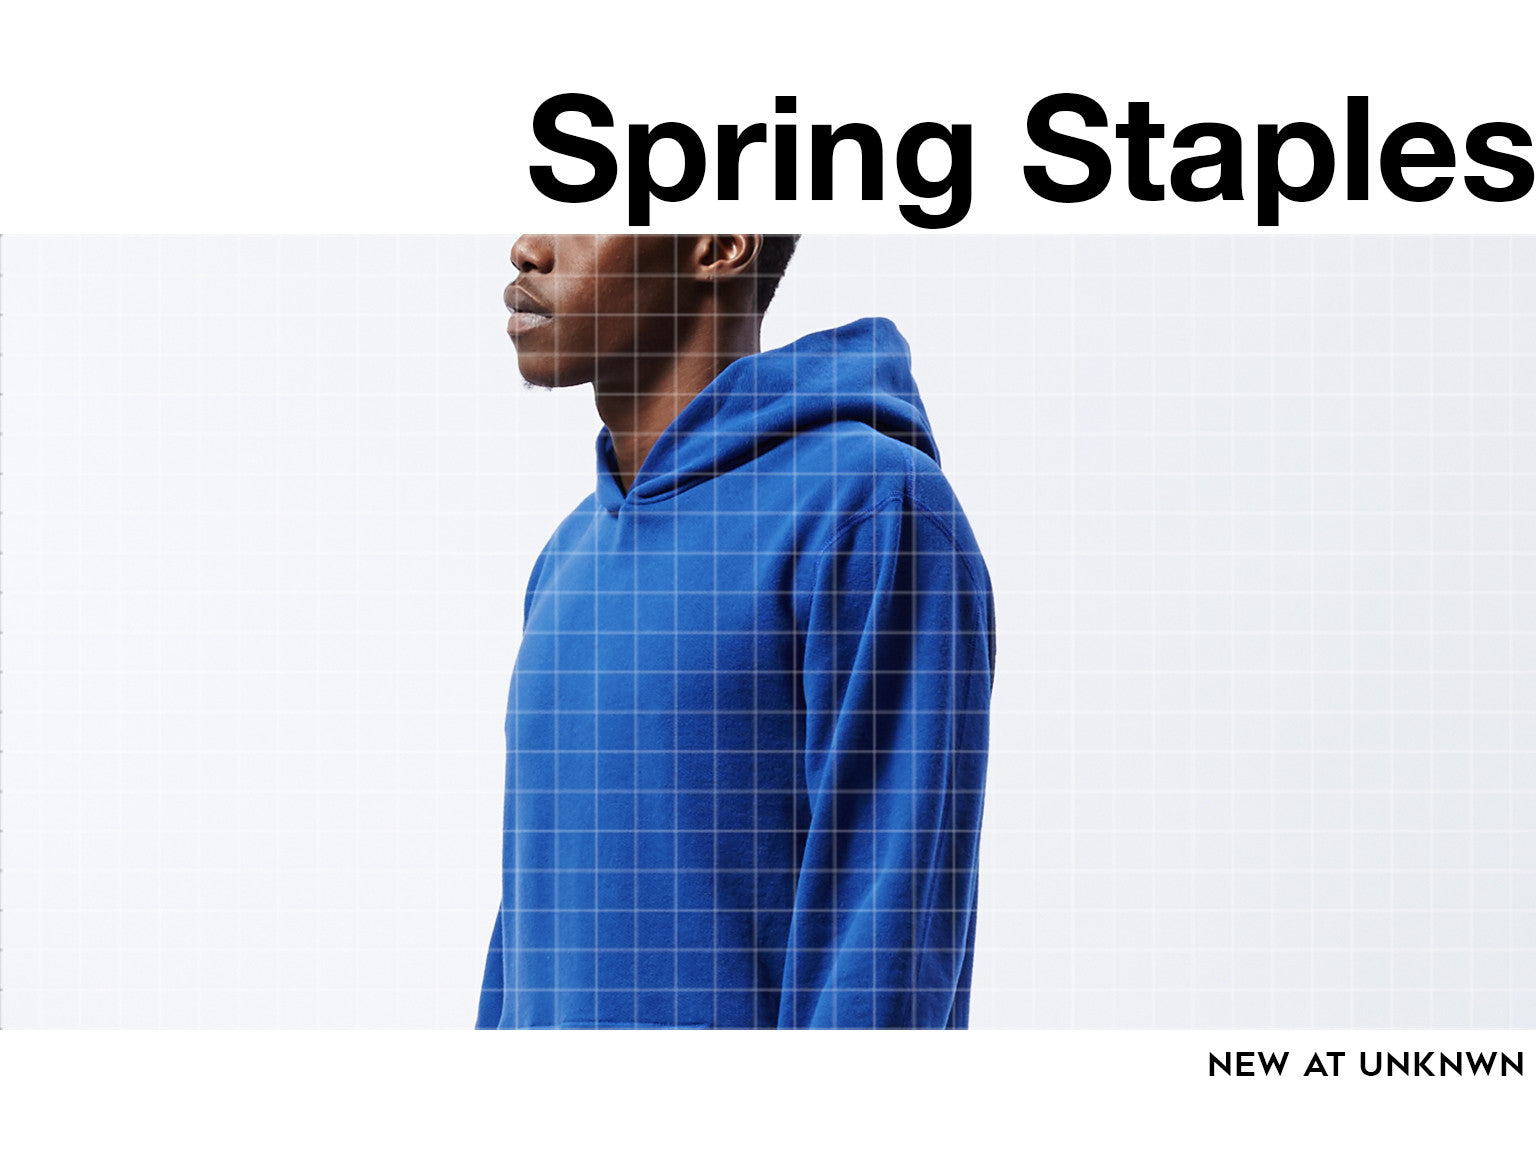 UNKNWN Presents Spring Staples